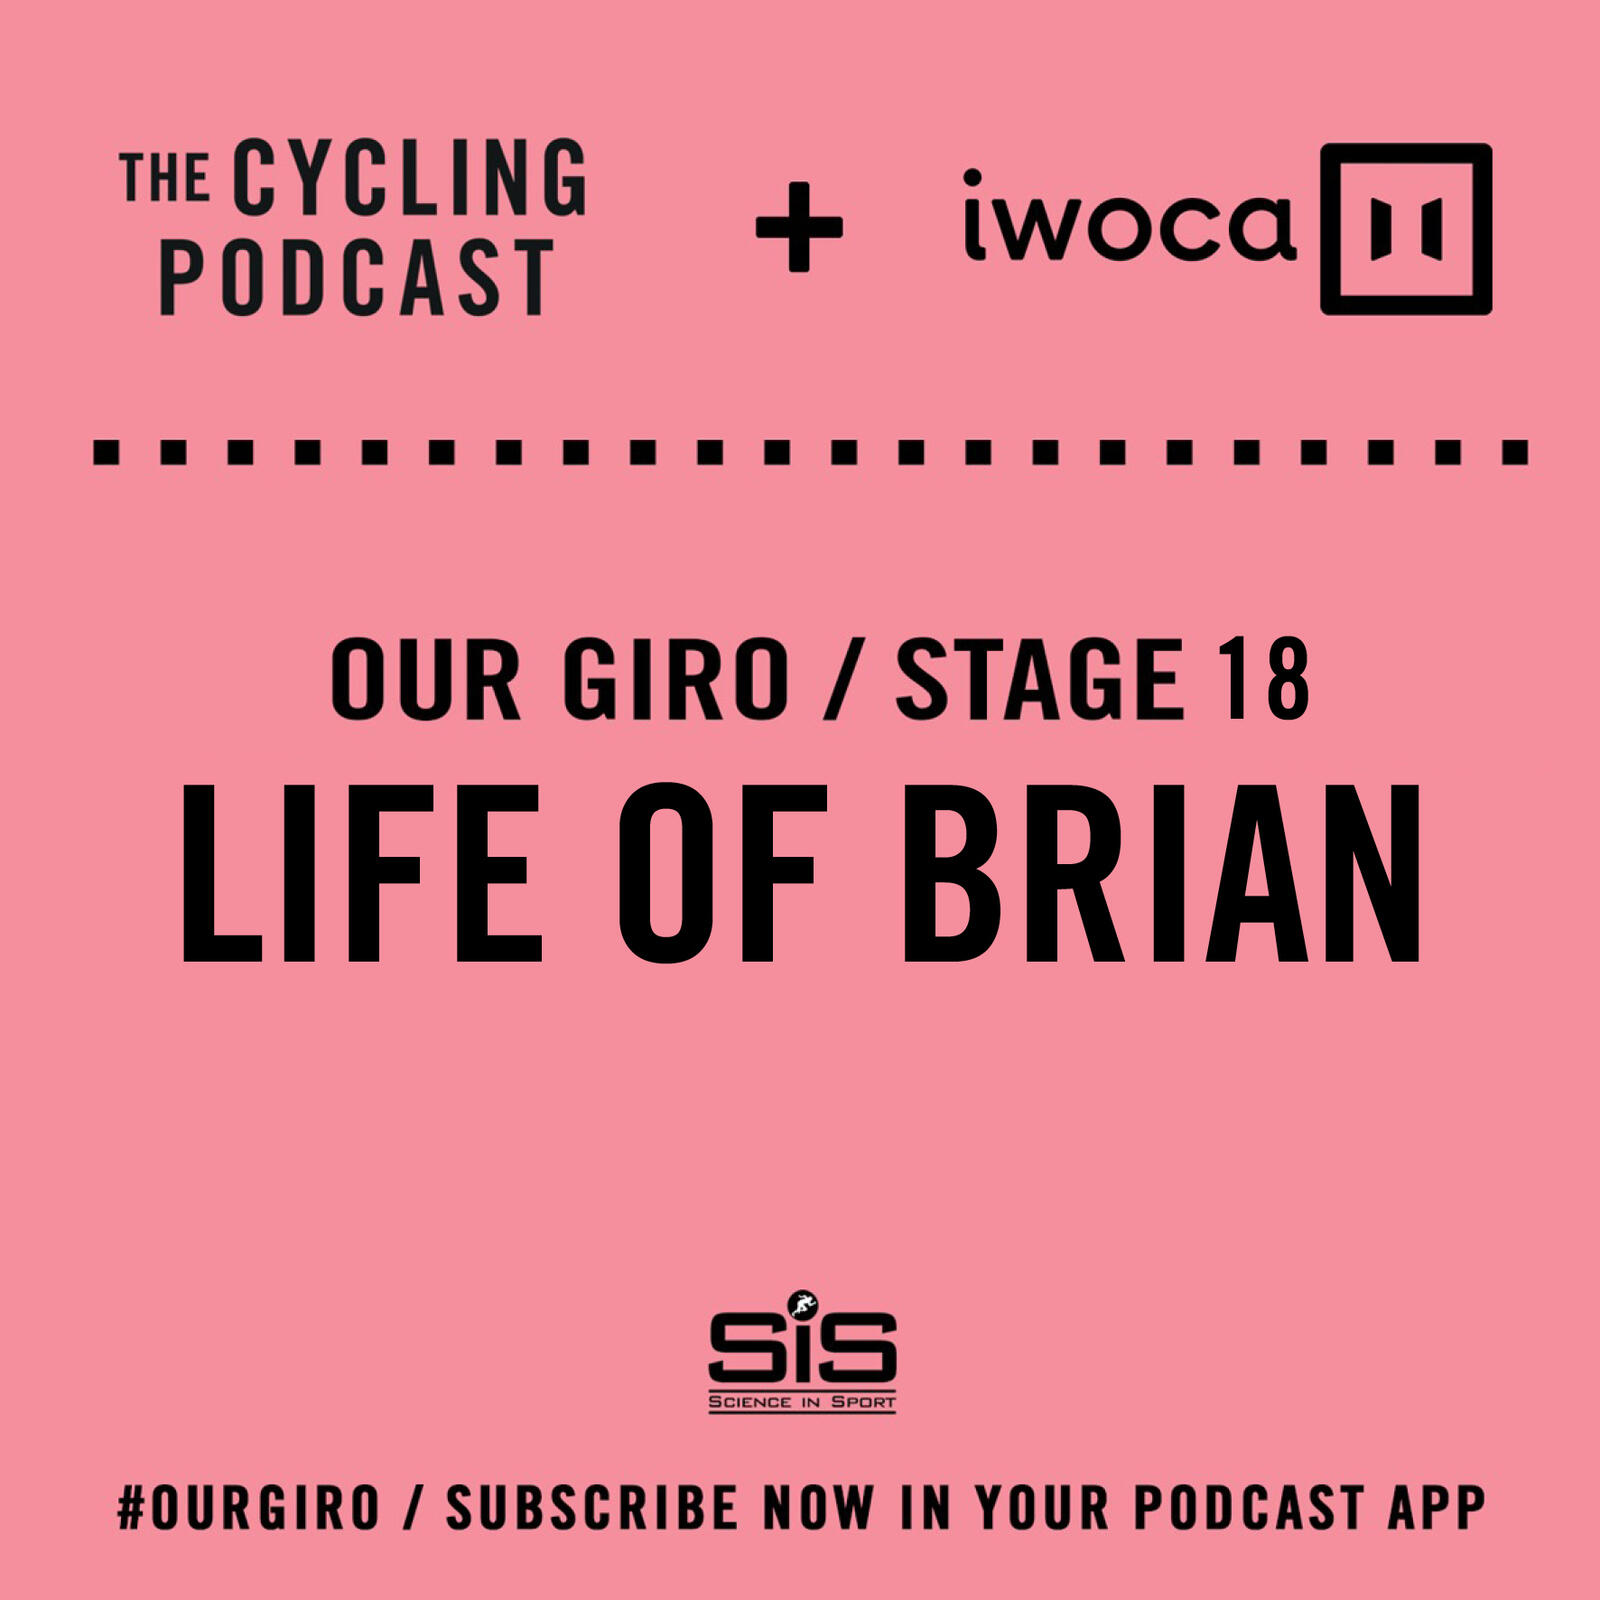 66: Our Giro stage 18: Life of Brian